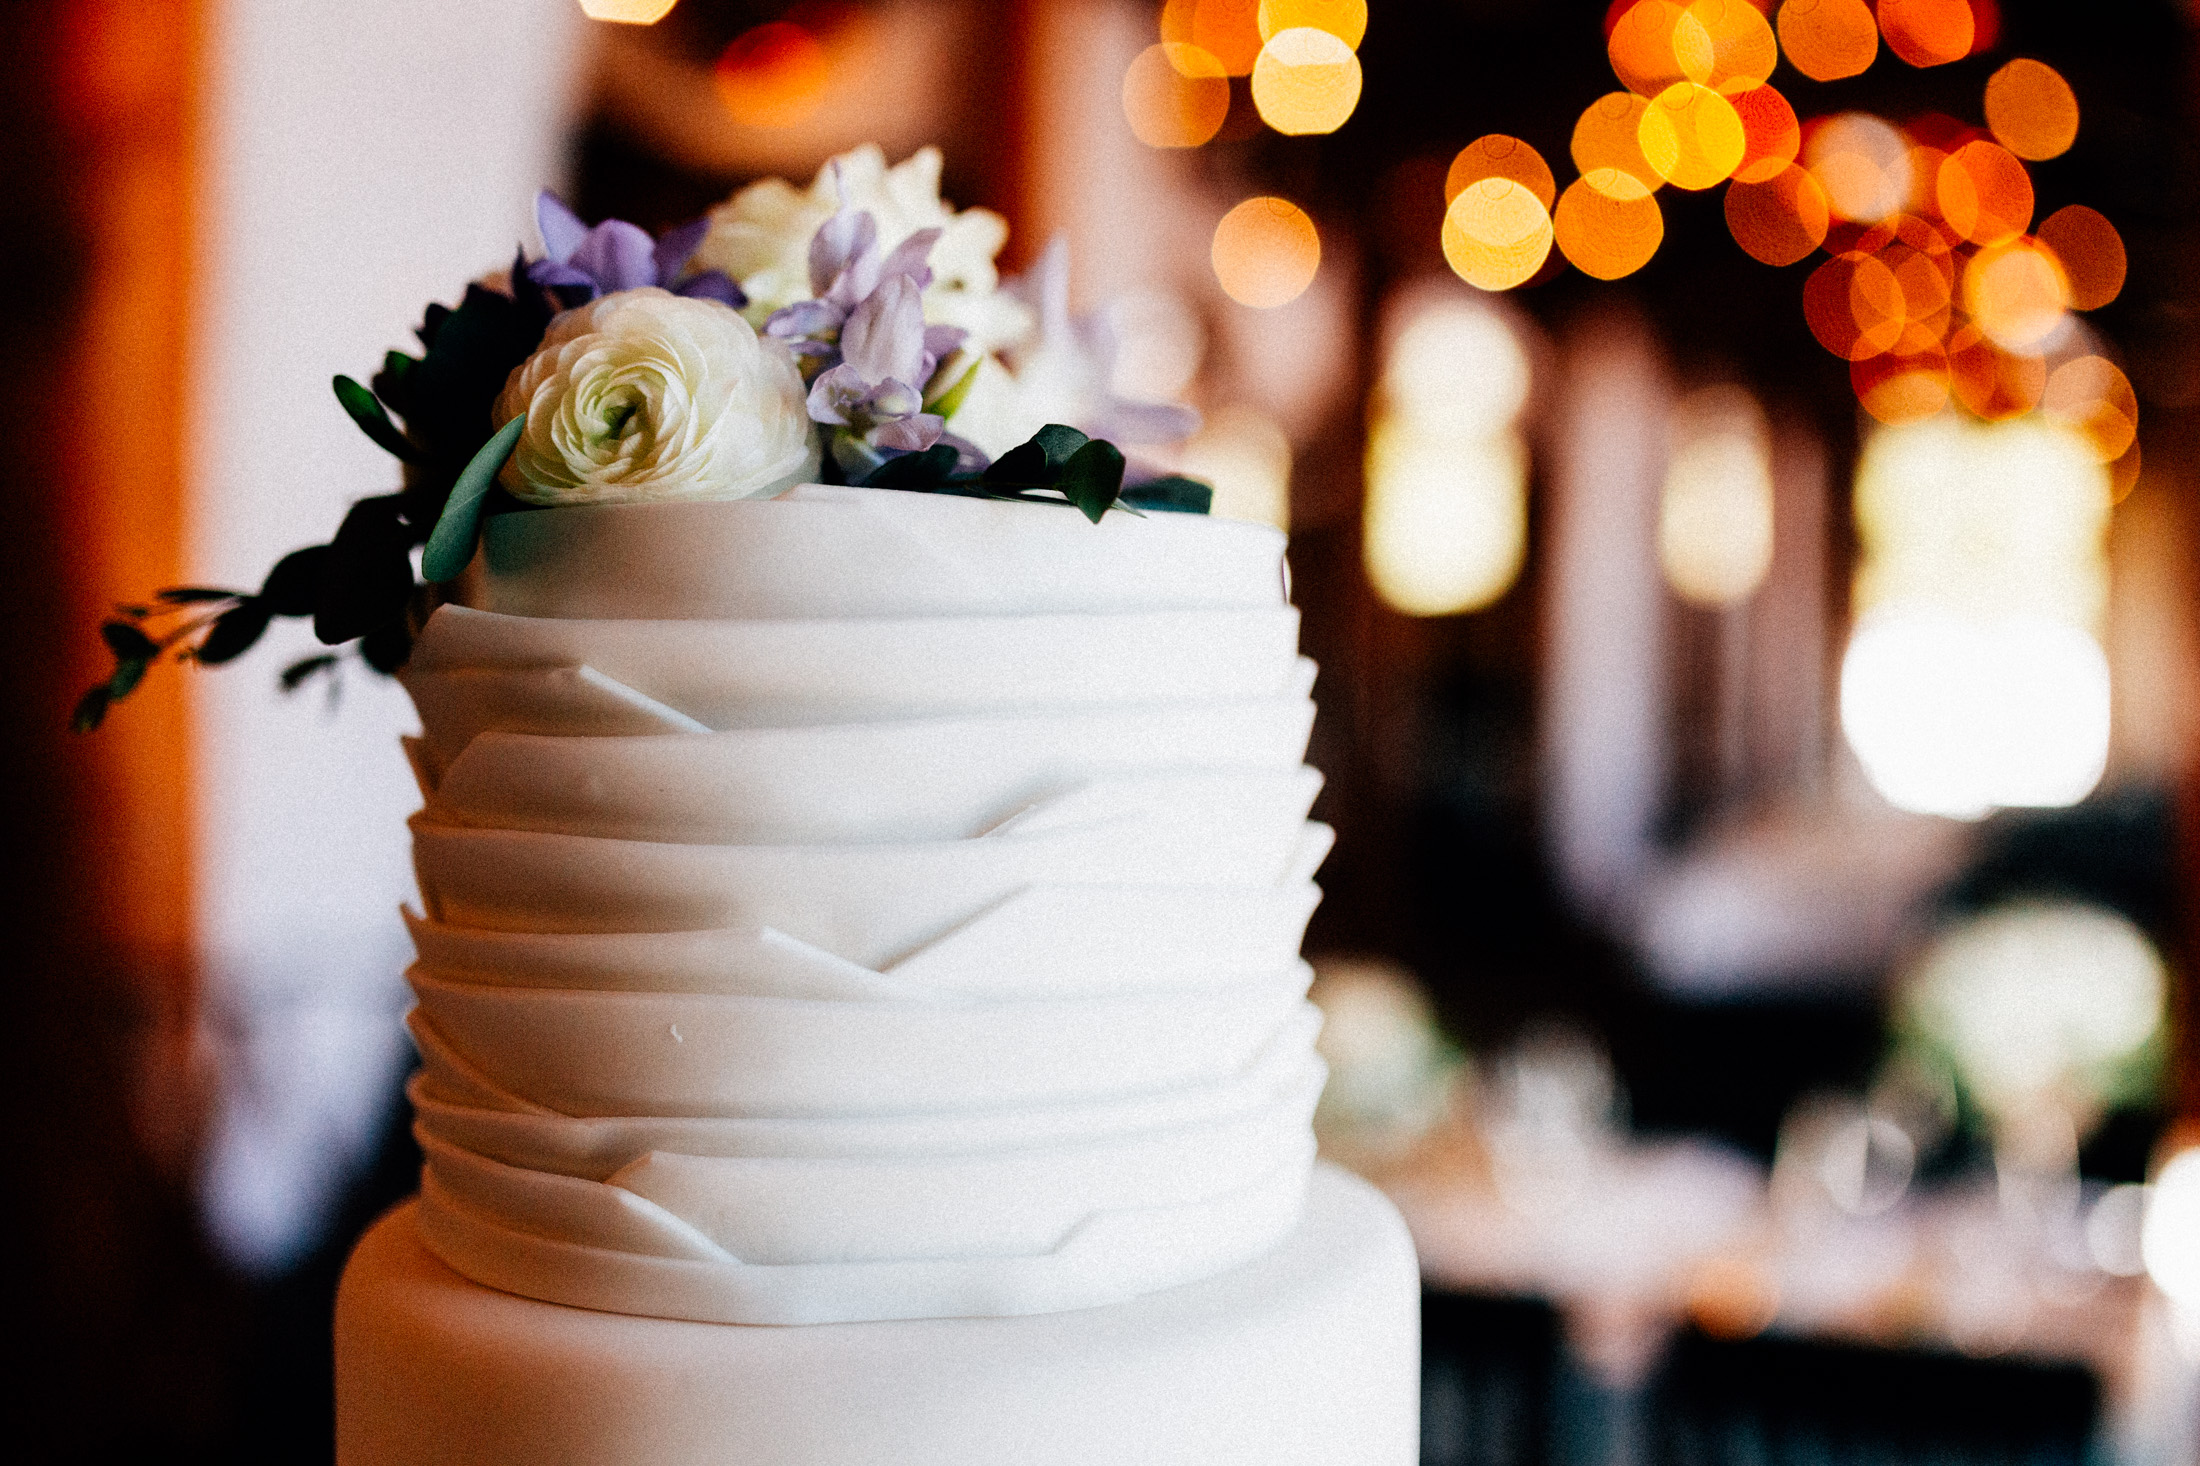 Wedding cake with flowers on top at Timber Ridge Lodge.